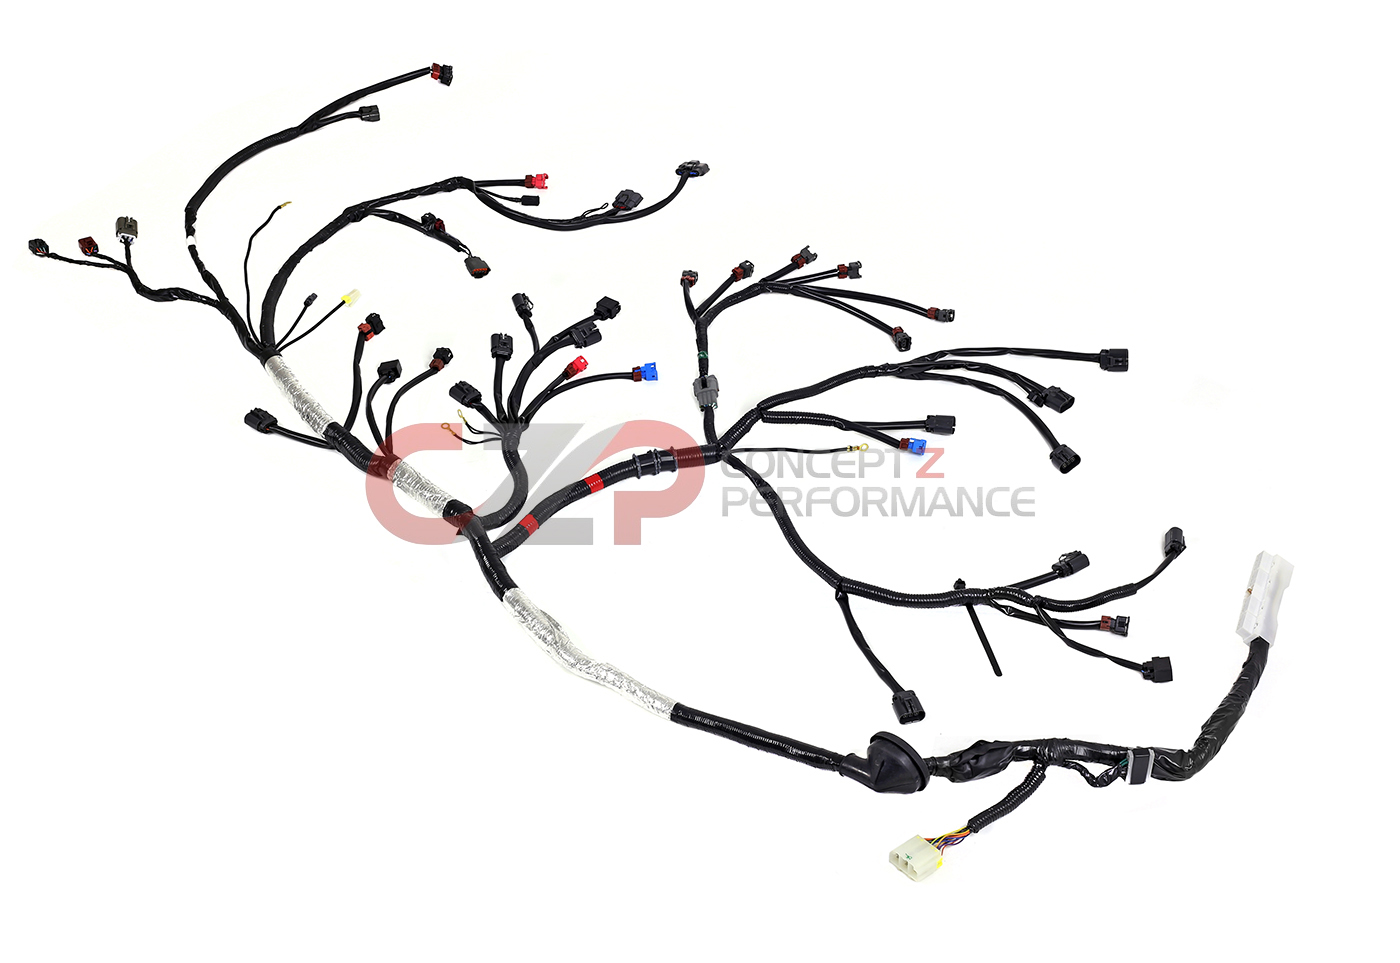 Nissan 300zx Wiring Harness Change Your Idea With Diagram Suzuki Samurai Schematic Schematics Rh Ksefanzone Com 1986 1985